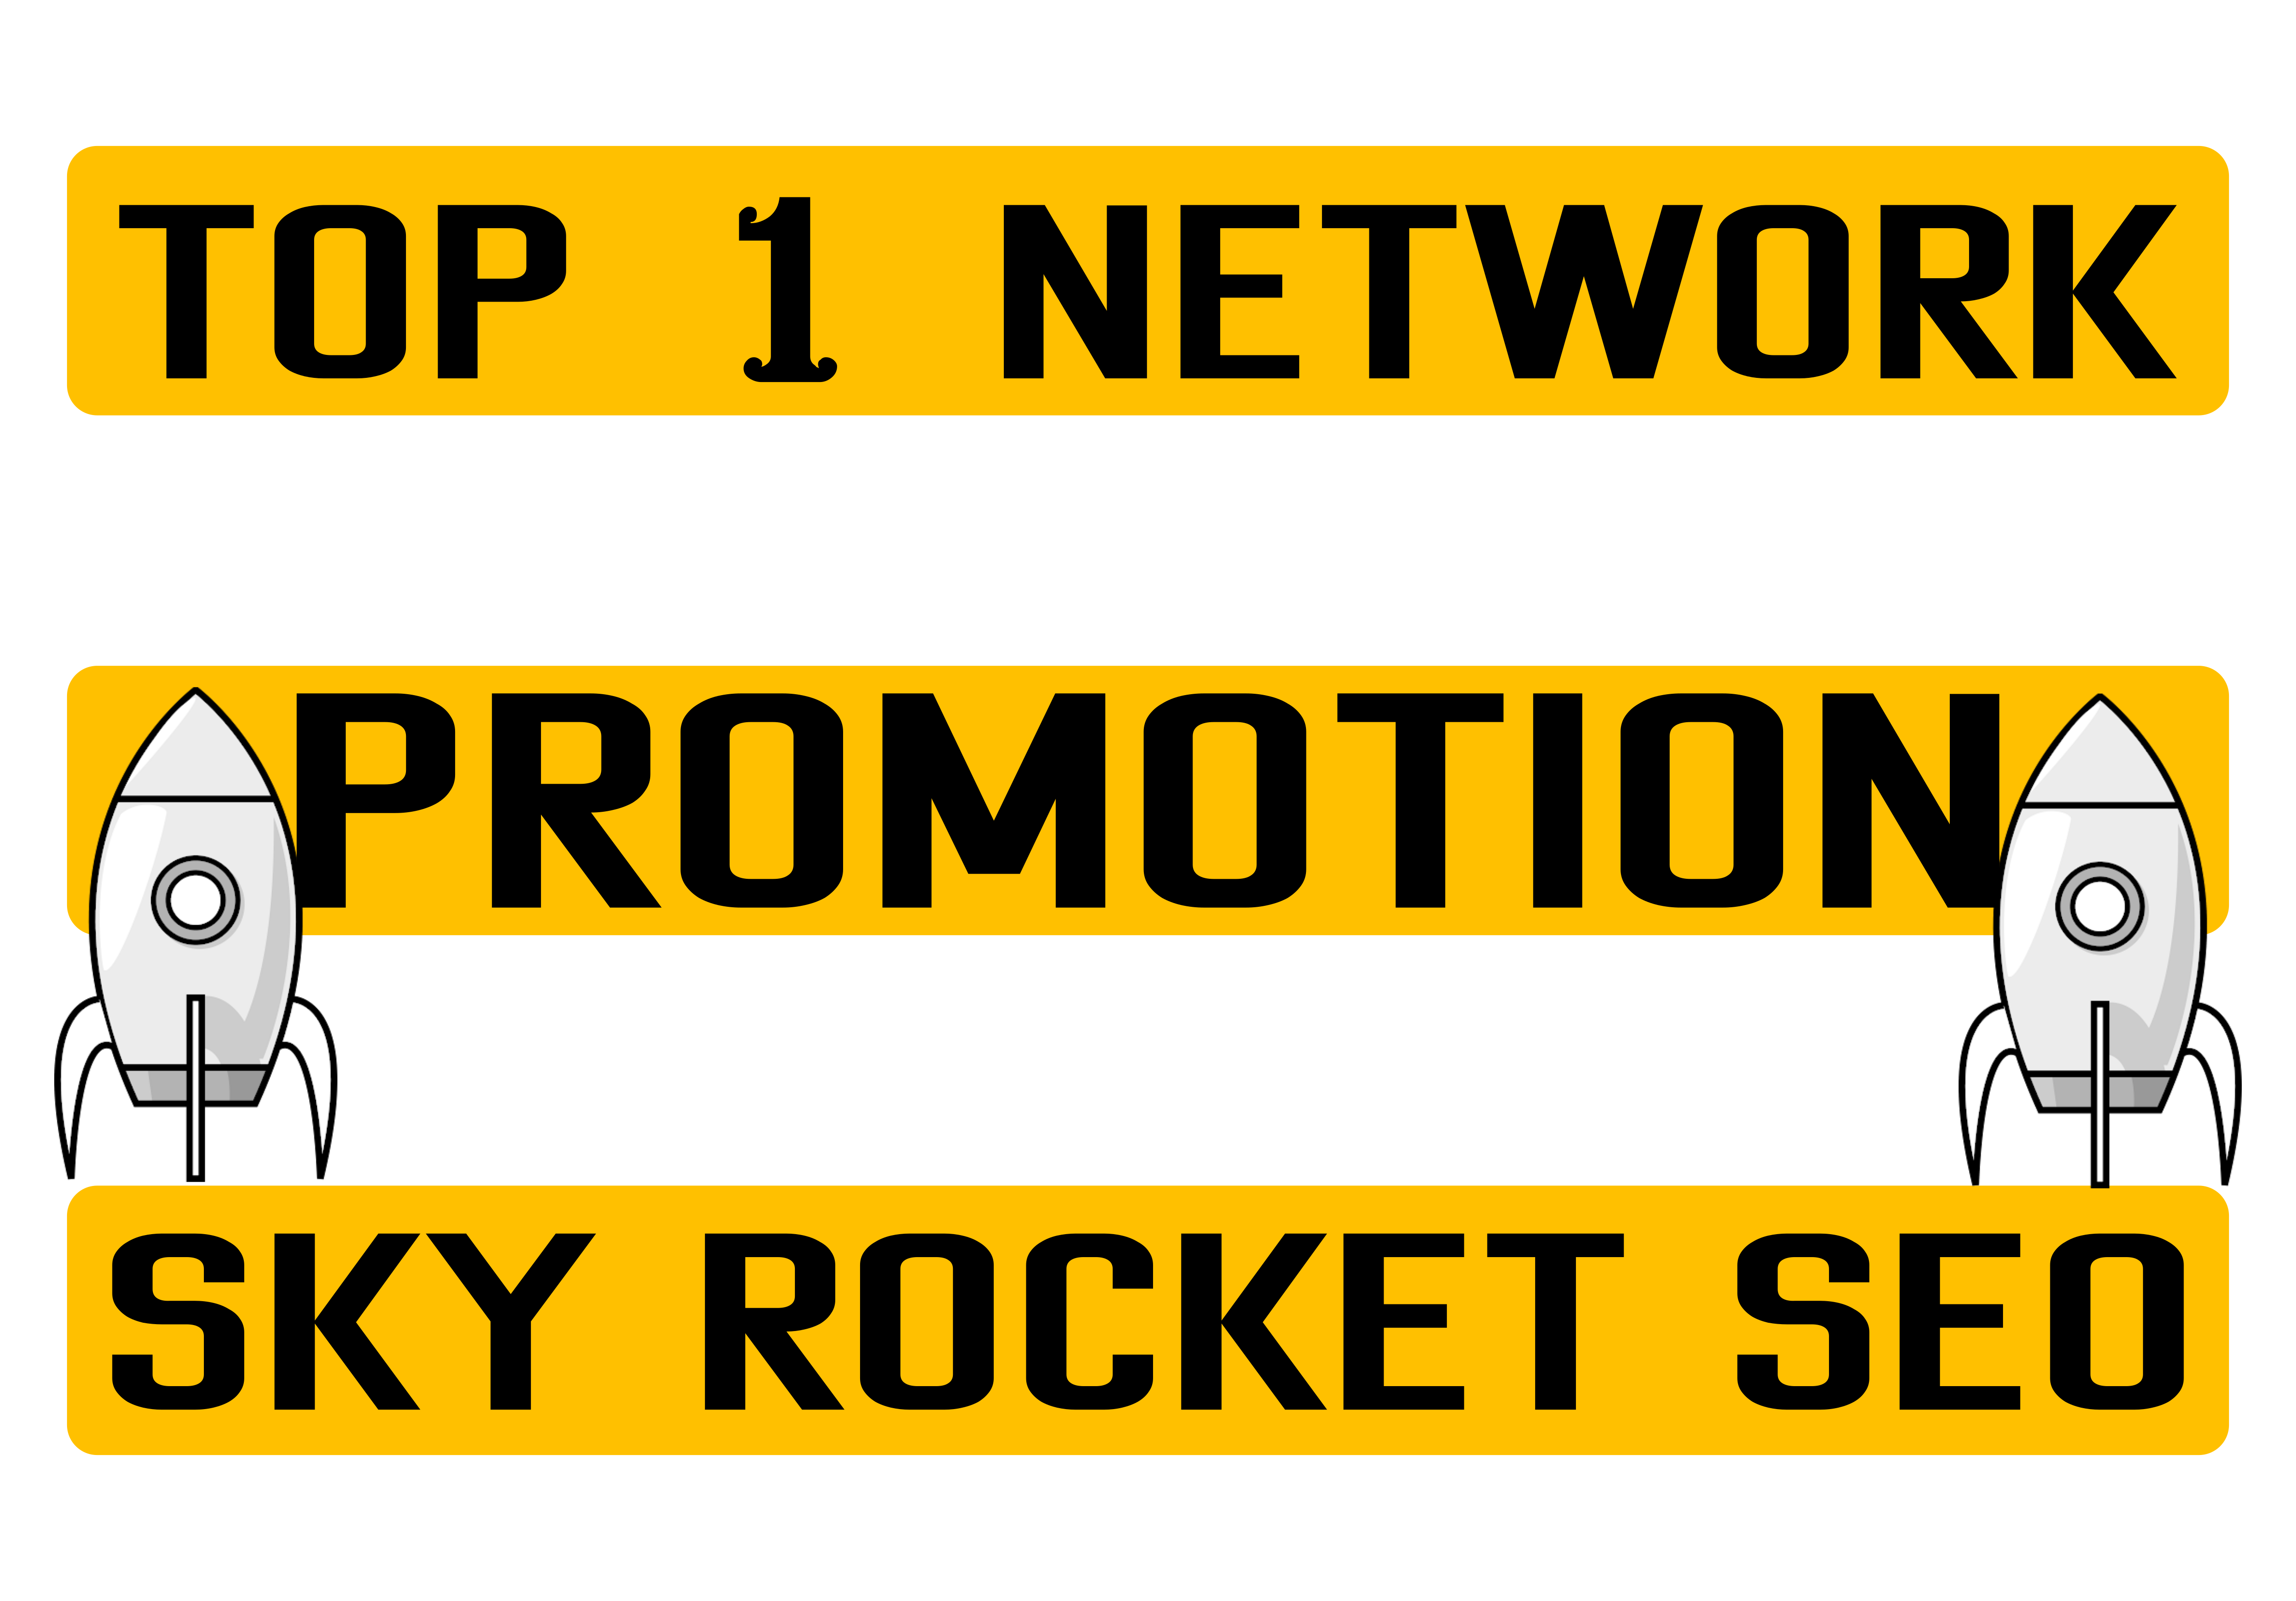 TOP 1 Network Promotion Get 1000 Backlinks Help To Increase Website SEO